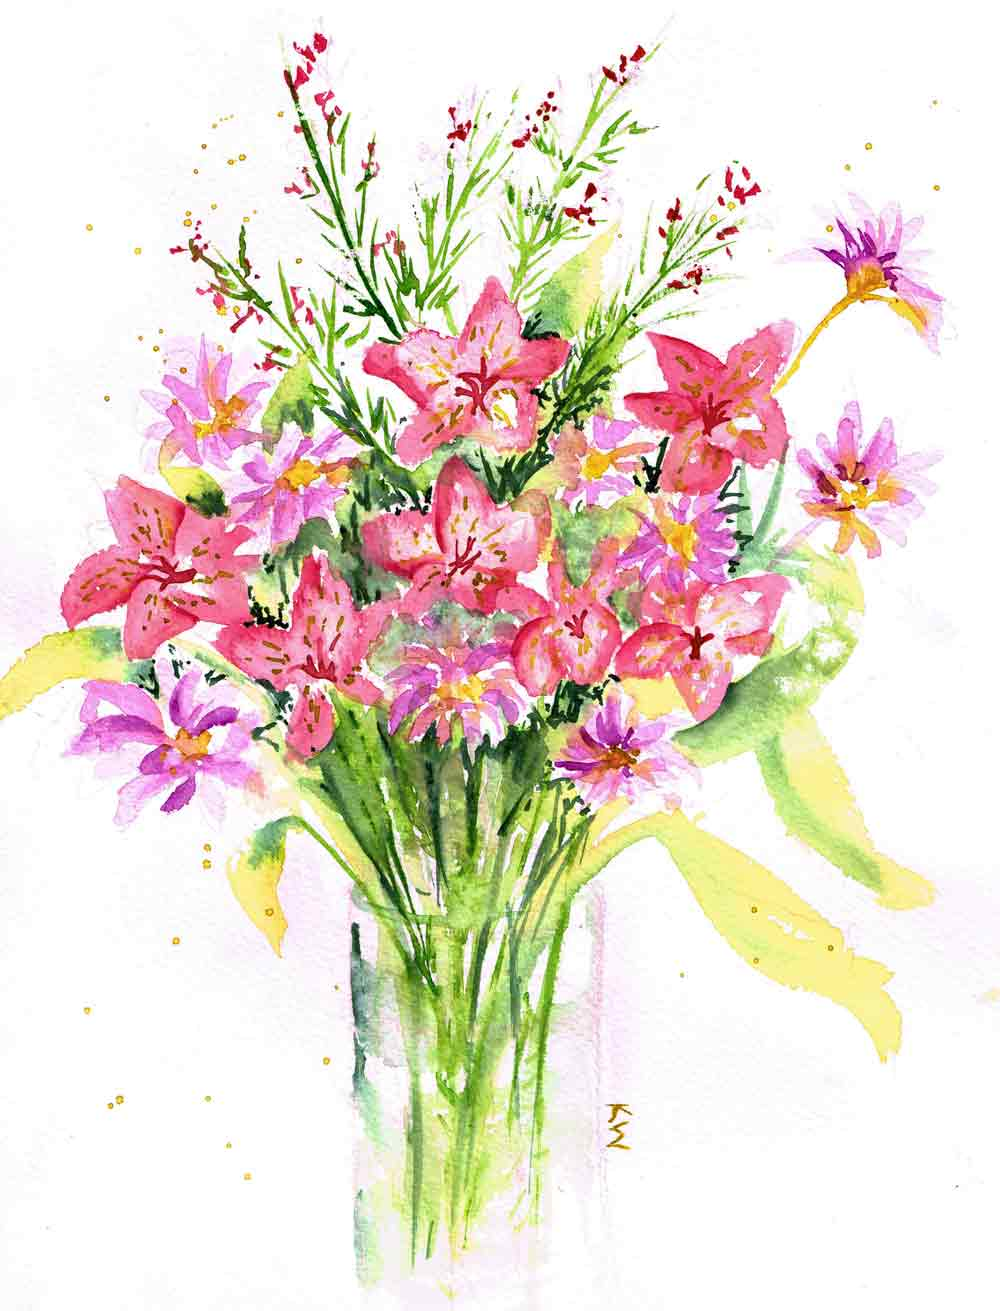 Fresh-flowers-scan-no-7-kw.jpg